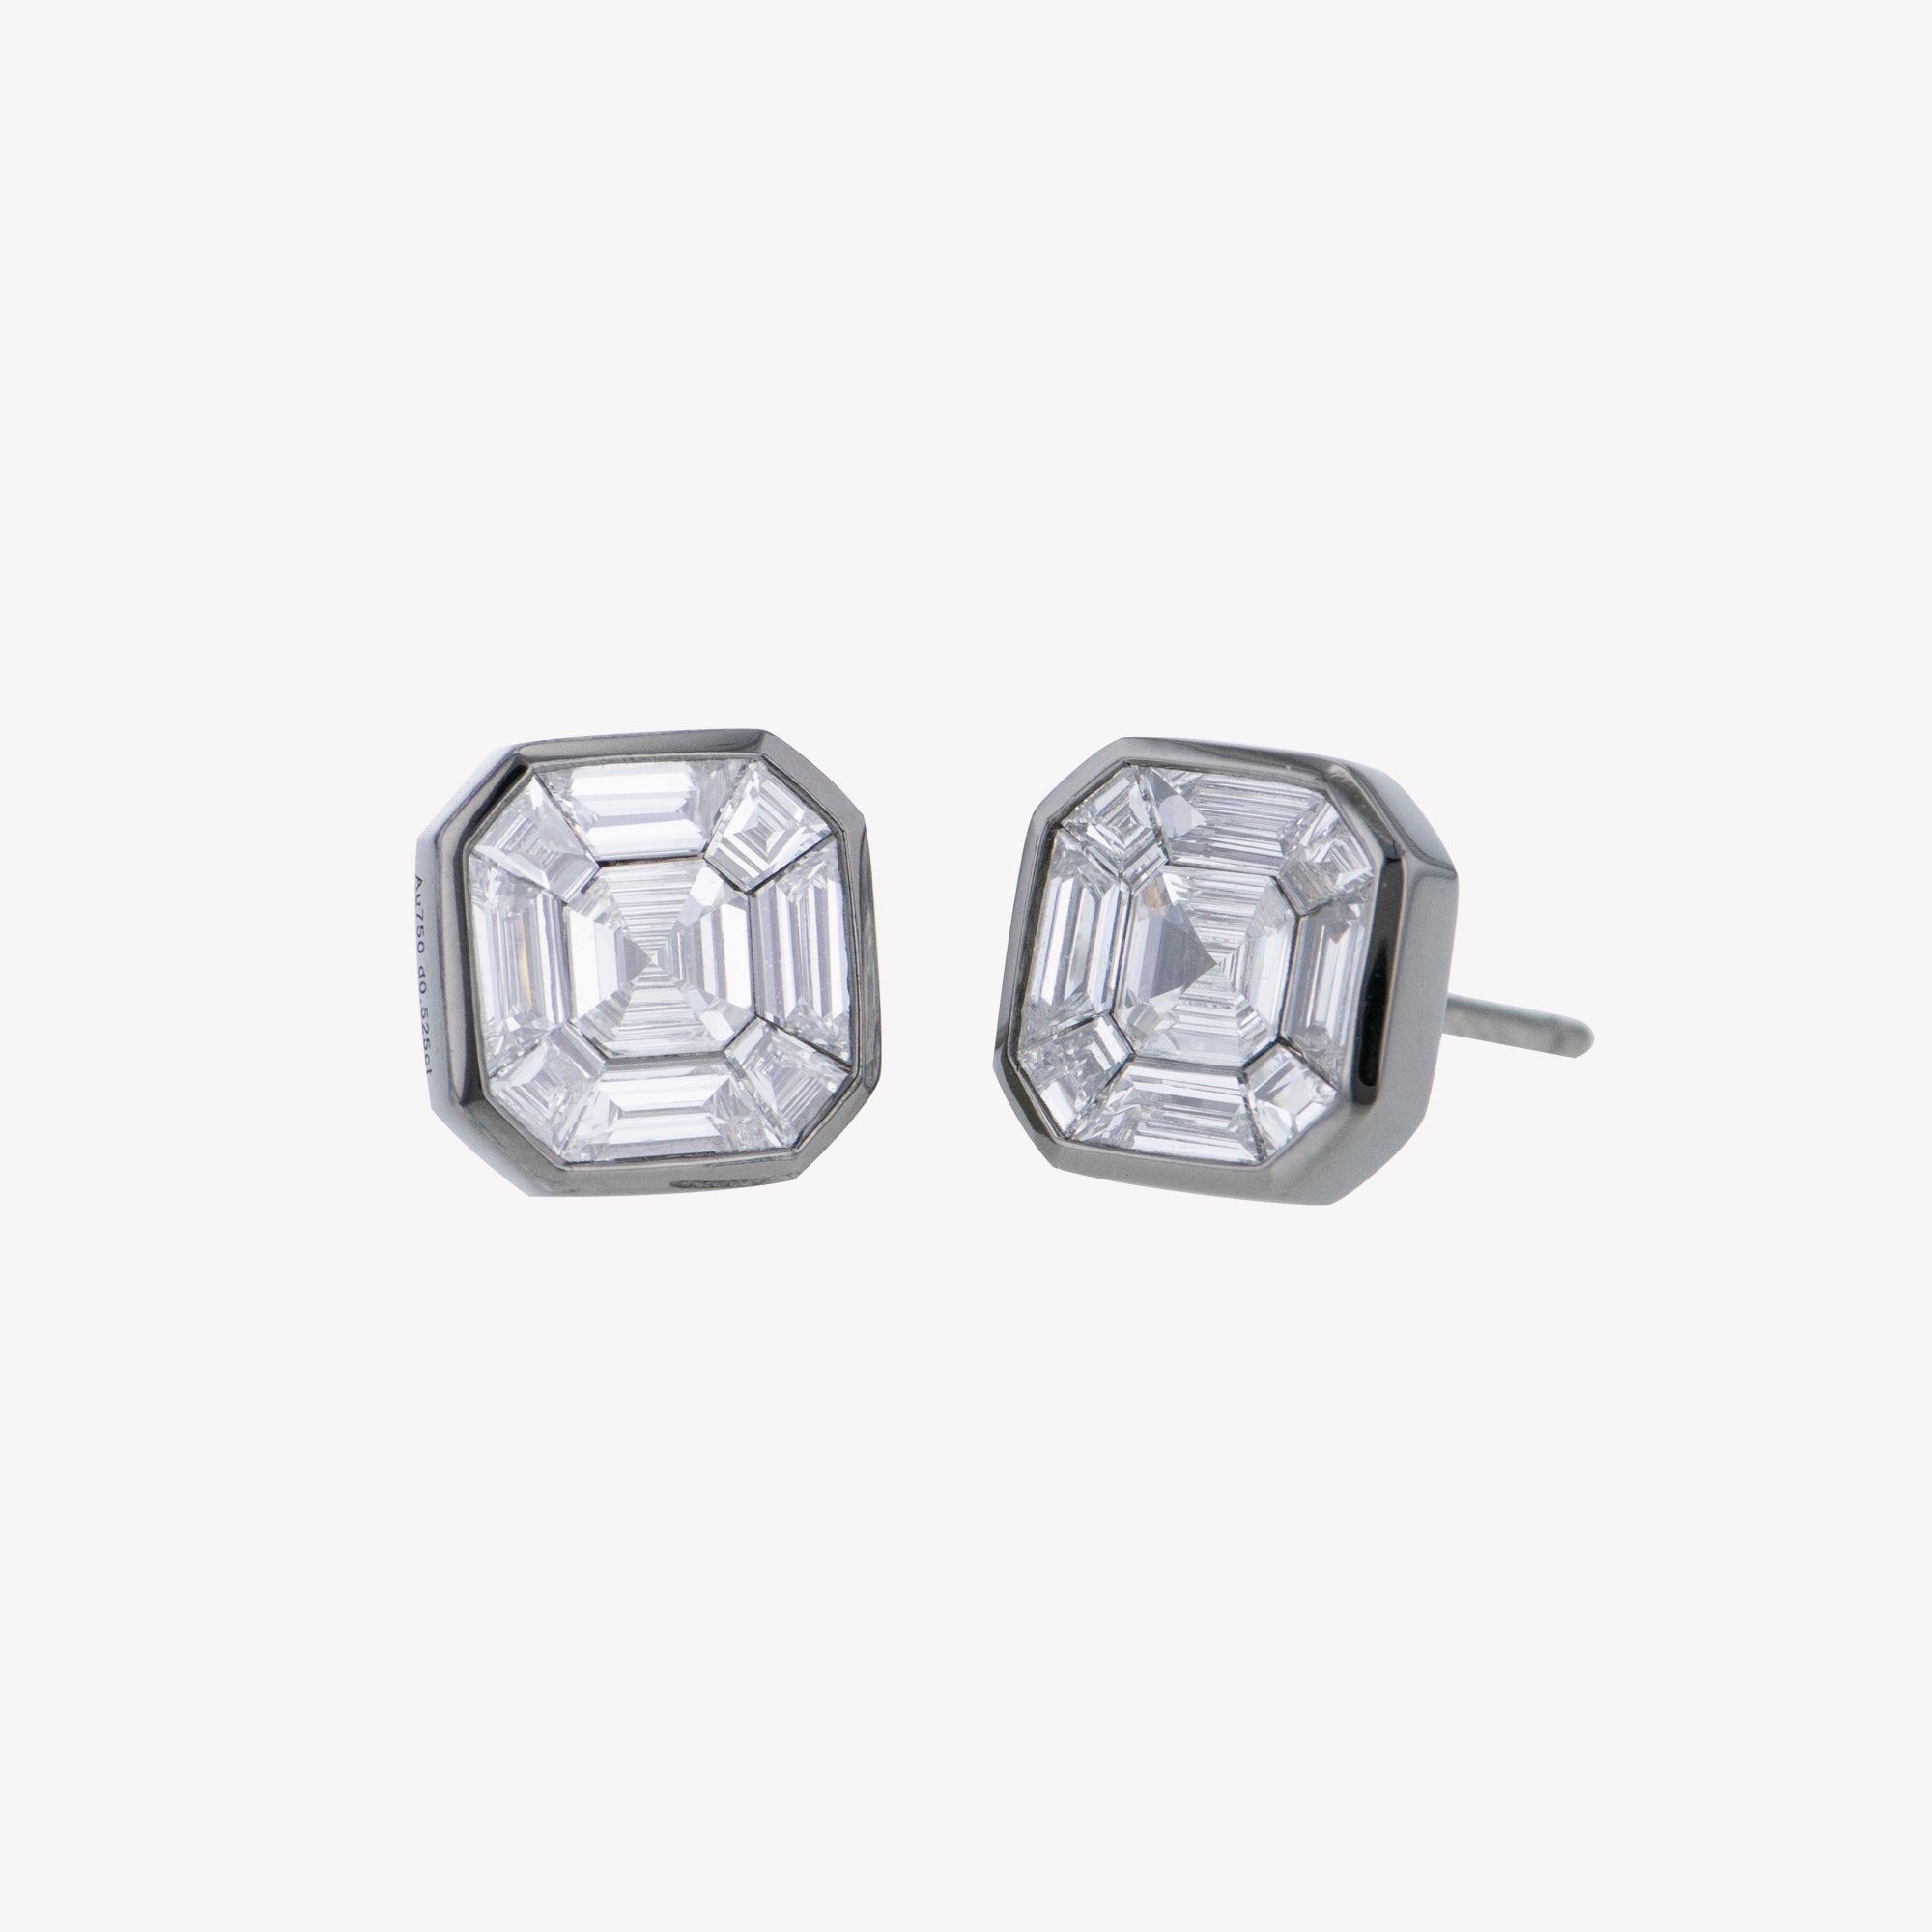 Black Gold Asscher Studs with Wing Inspired Accessories